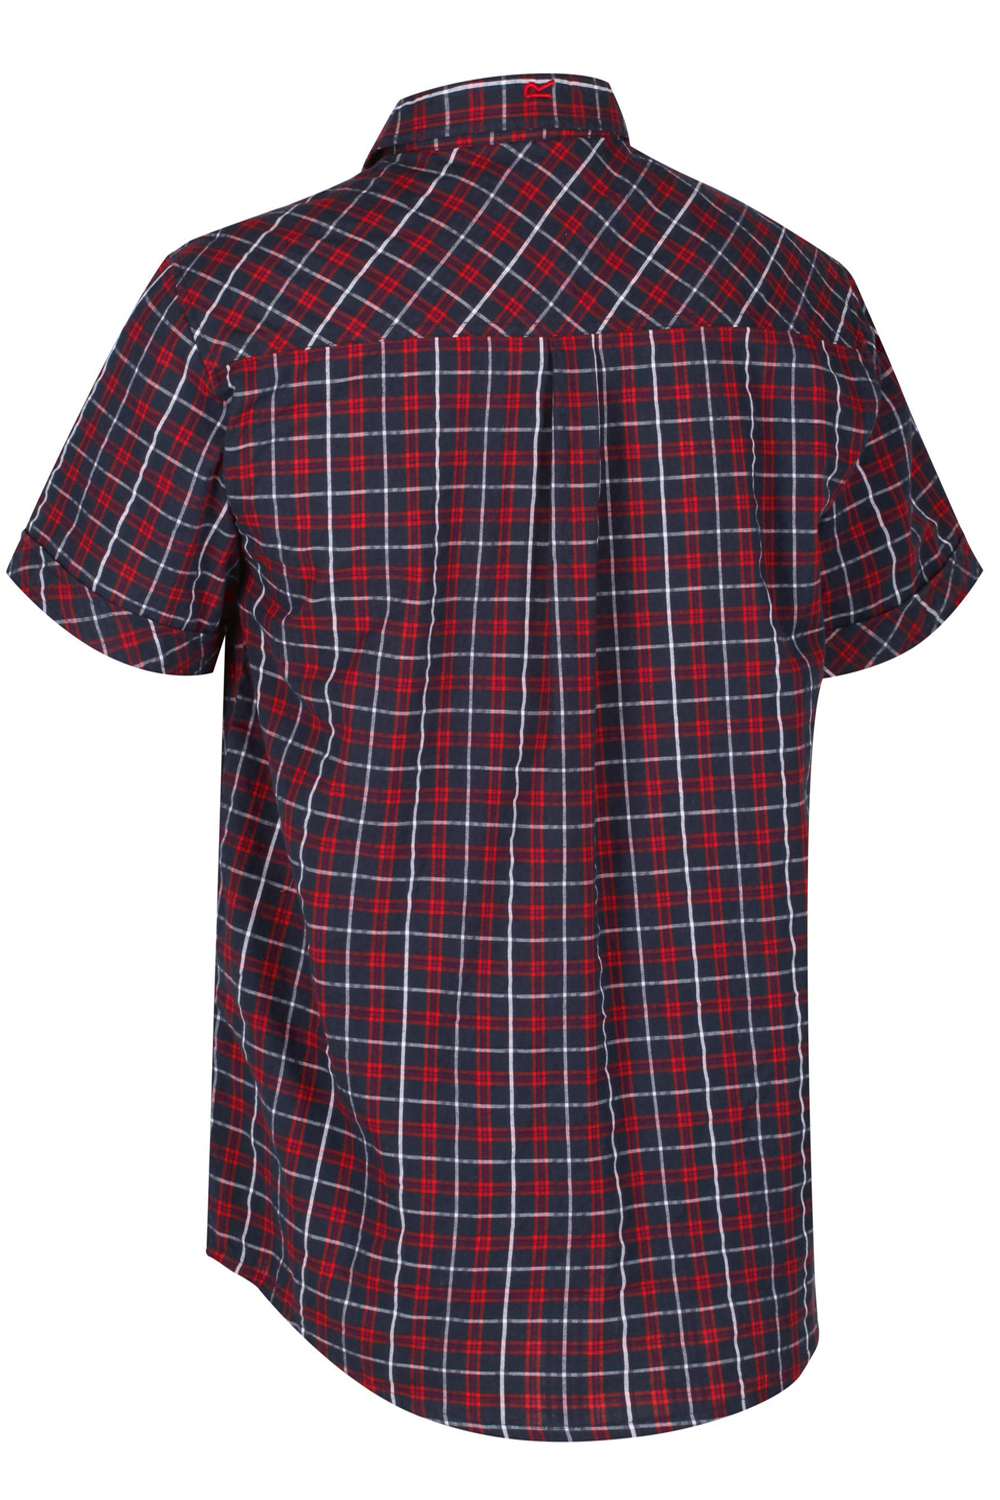 Regatta-Mens-Deakin-II-Coolweave-Cotton-Short-Sleeved-Summer-Check-Shirt-RRP-50 thumbnail 6